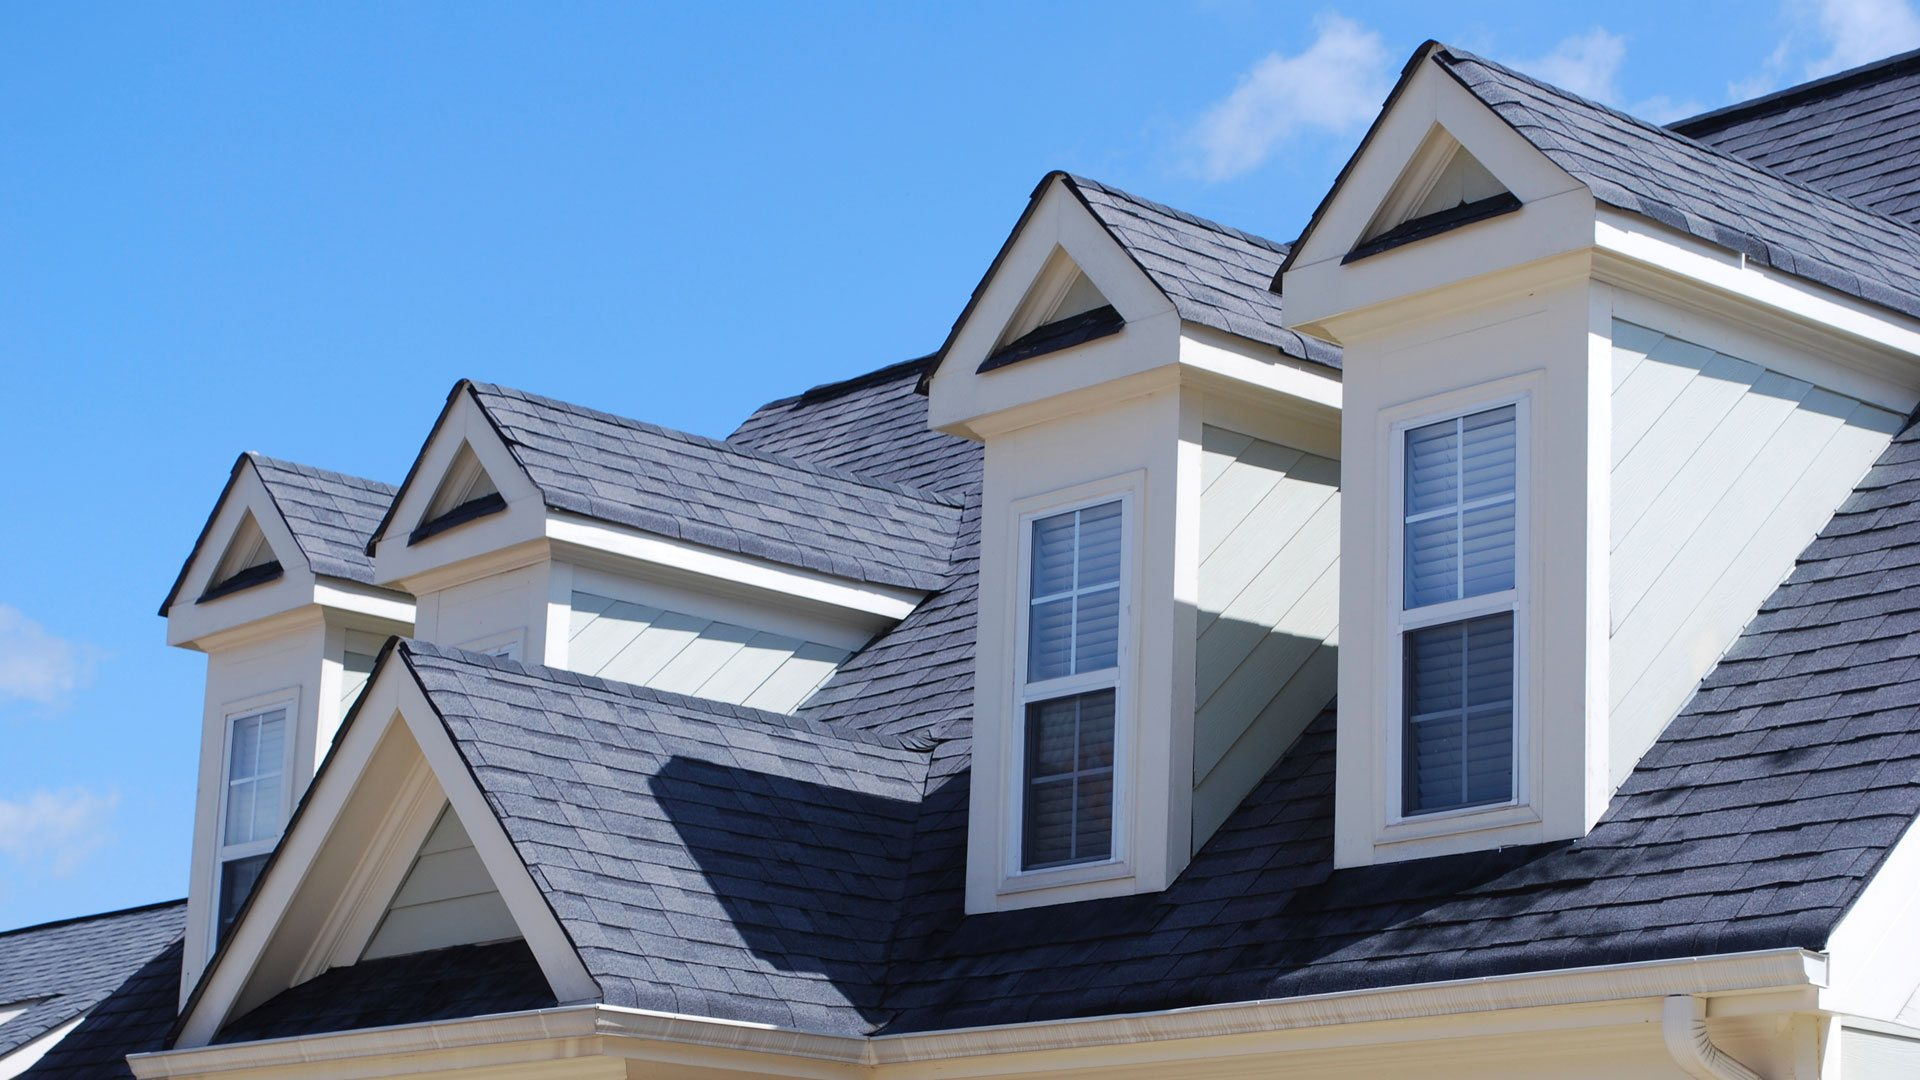 Sunik Roofing Calgary Roofing Companies Expert Roofing